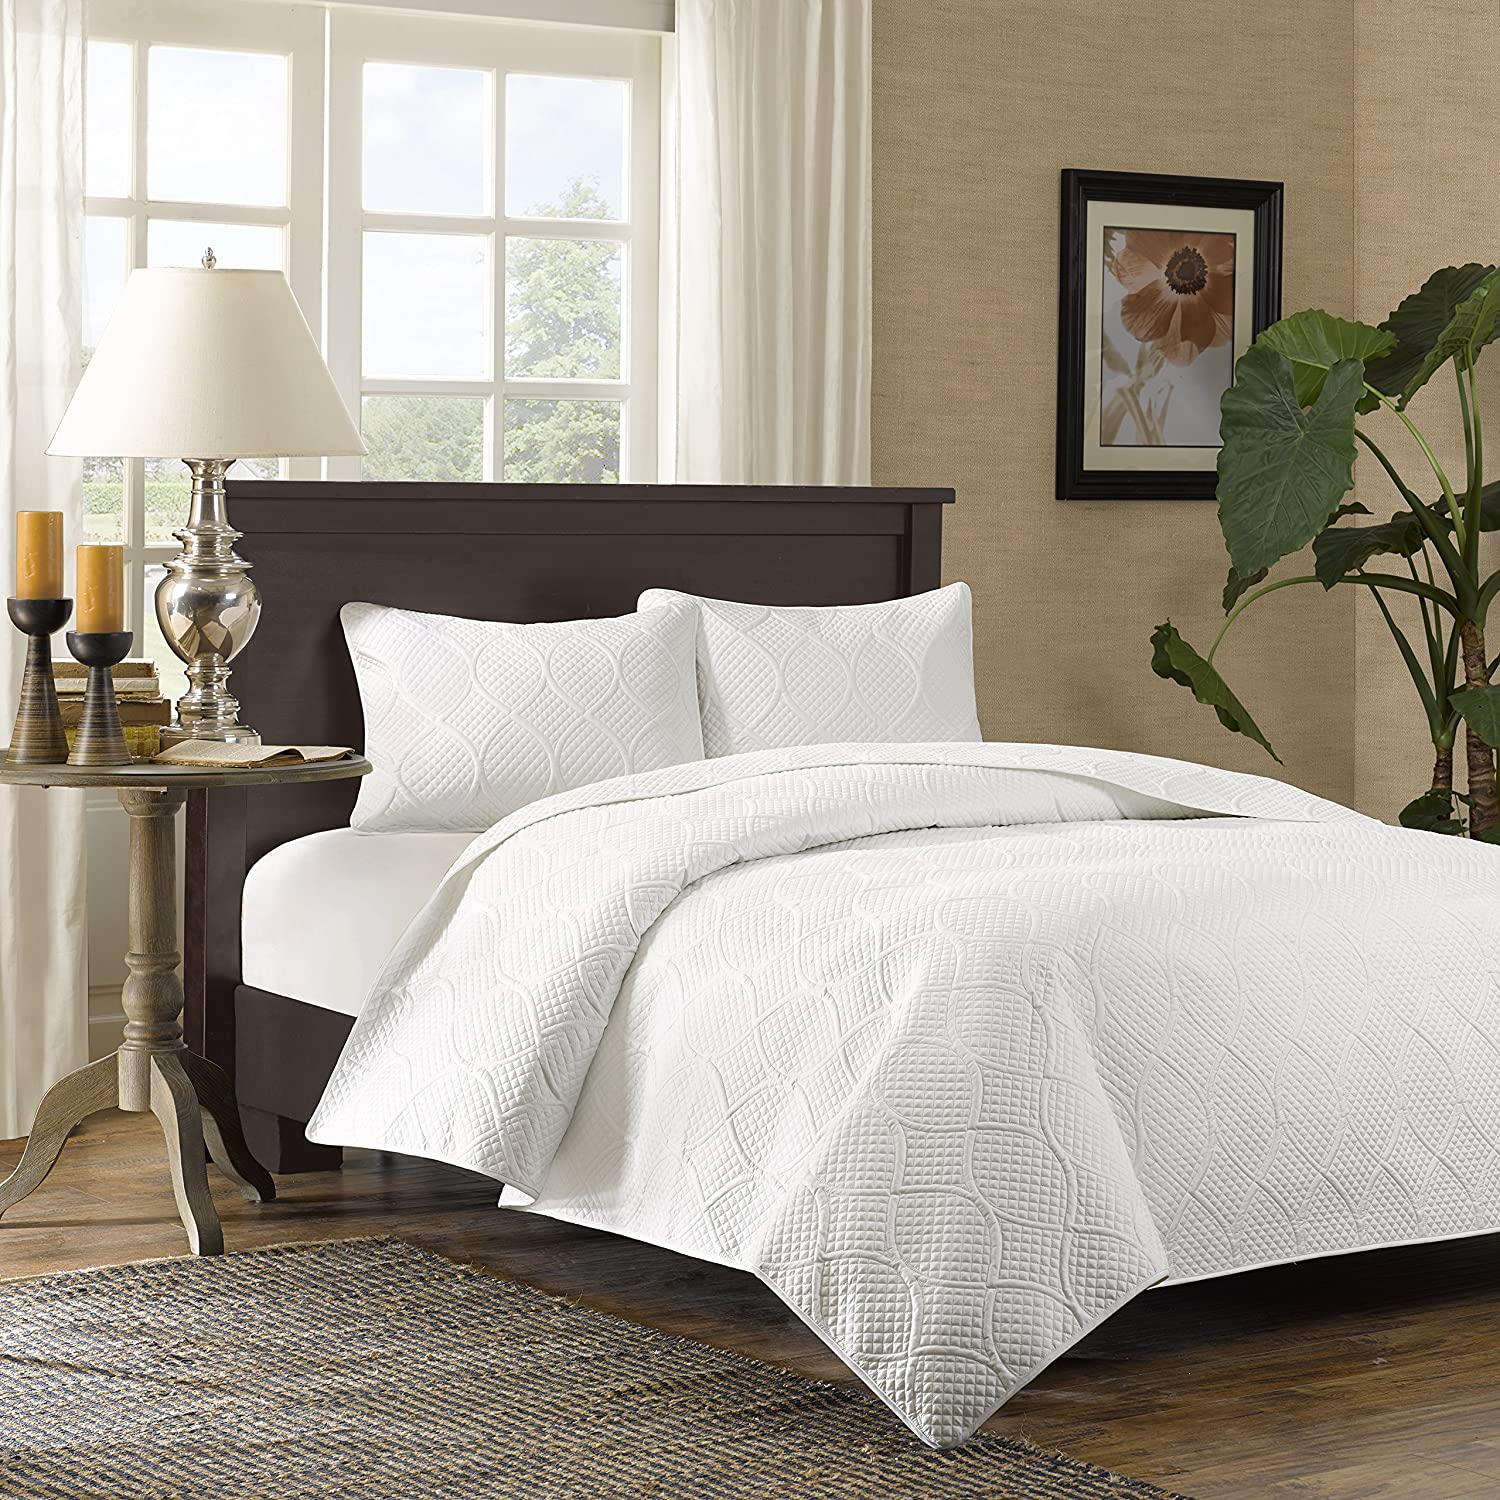 Amazoncom Madison Park Corrine 3 Piece Coverlet Set King